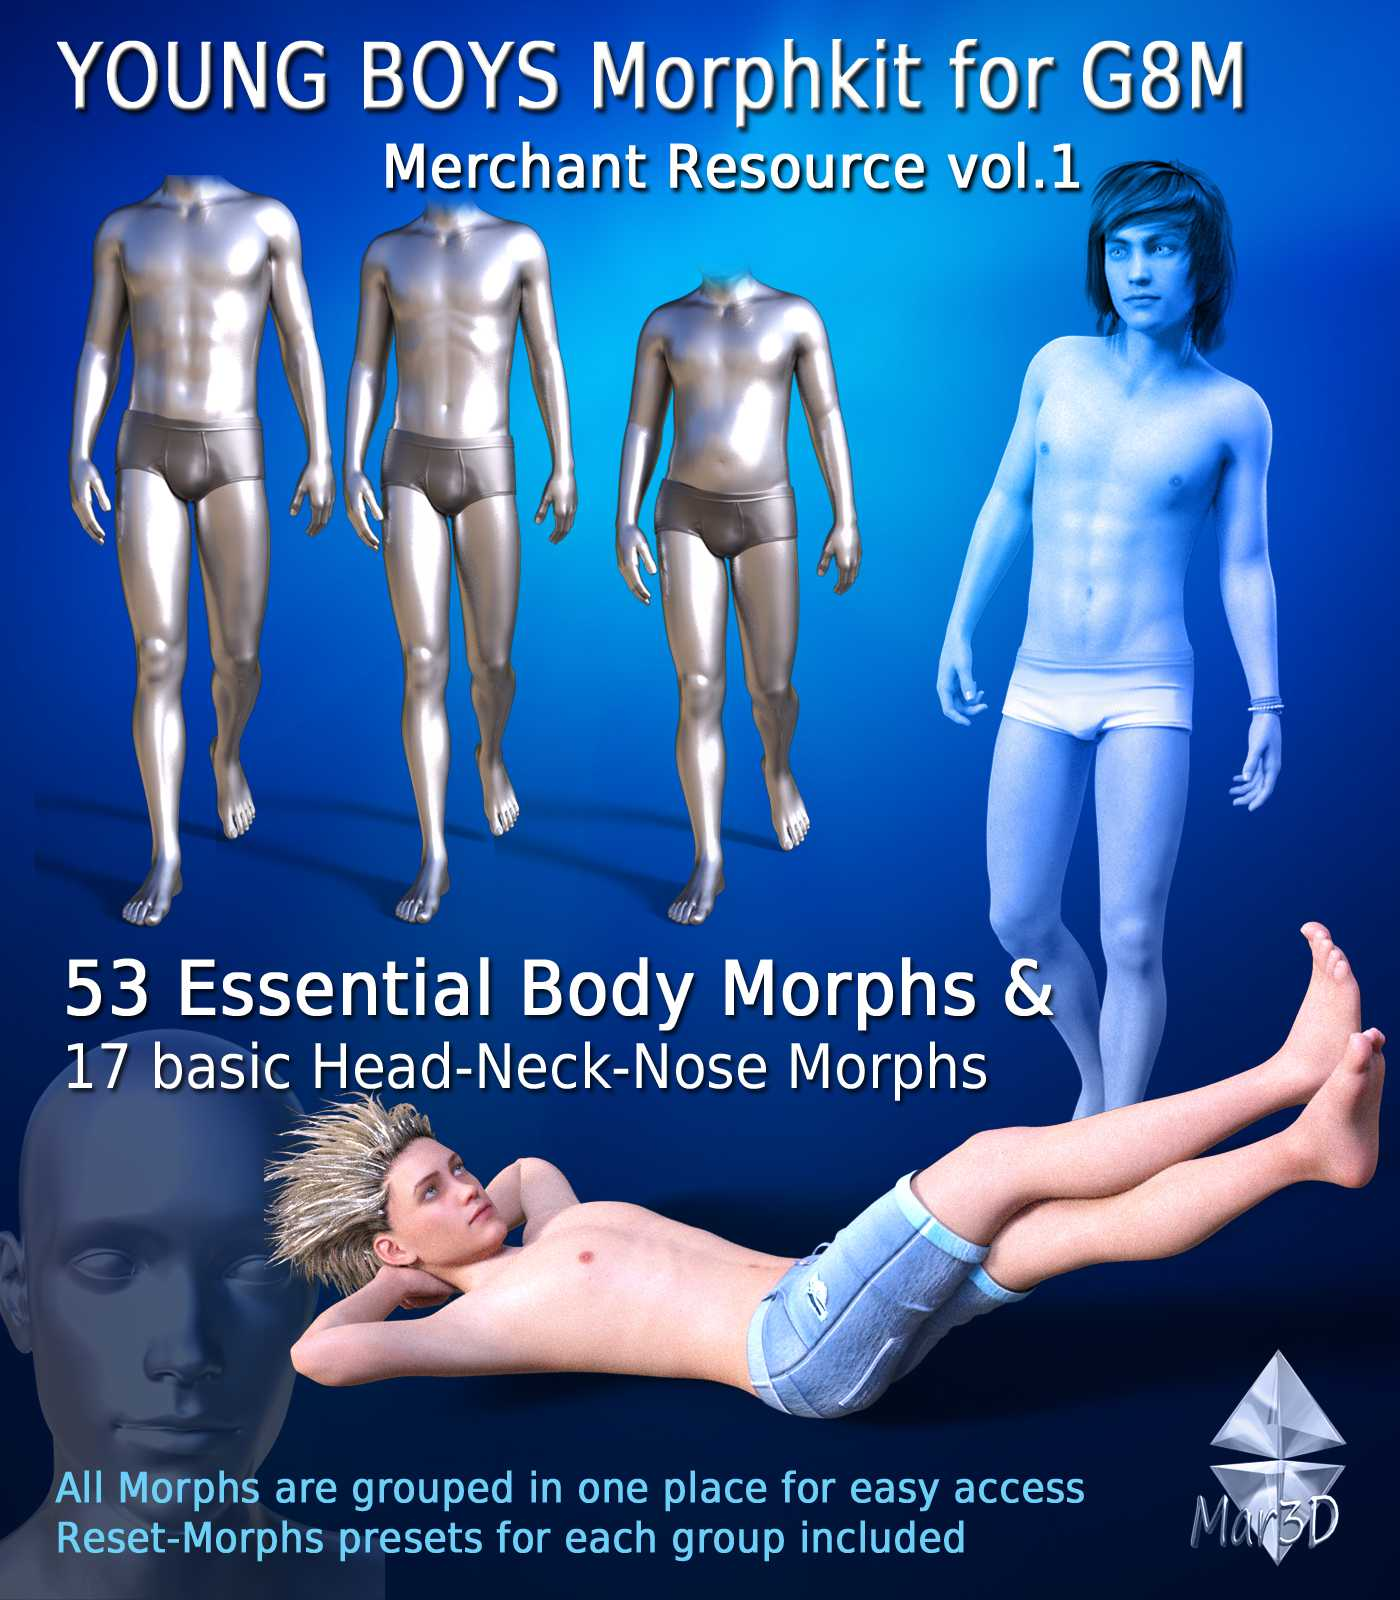 Young Boys Morphkit for G8M – Merchant Resource 1